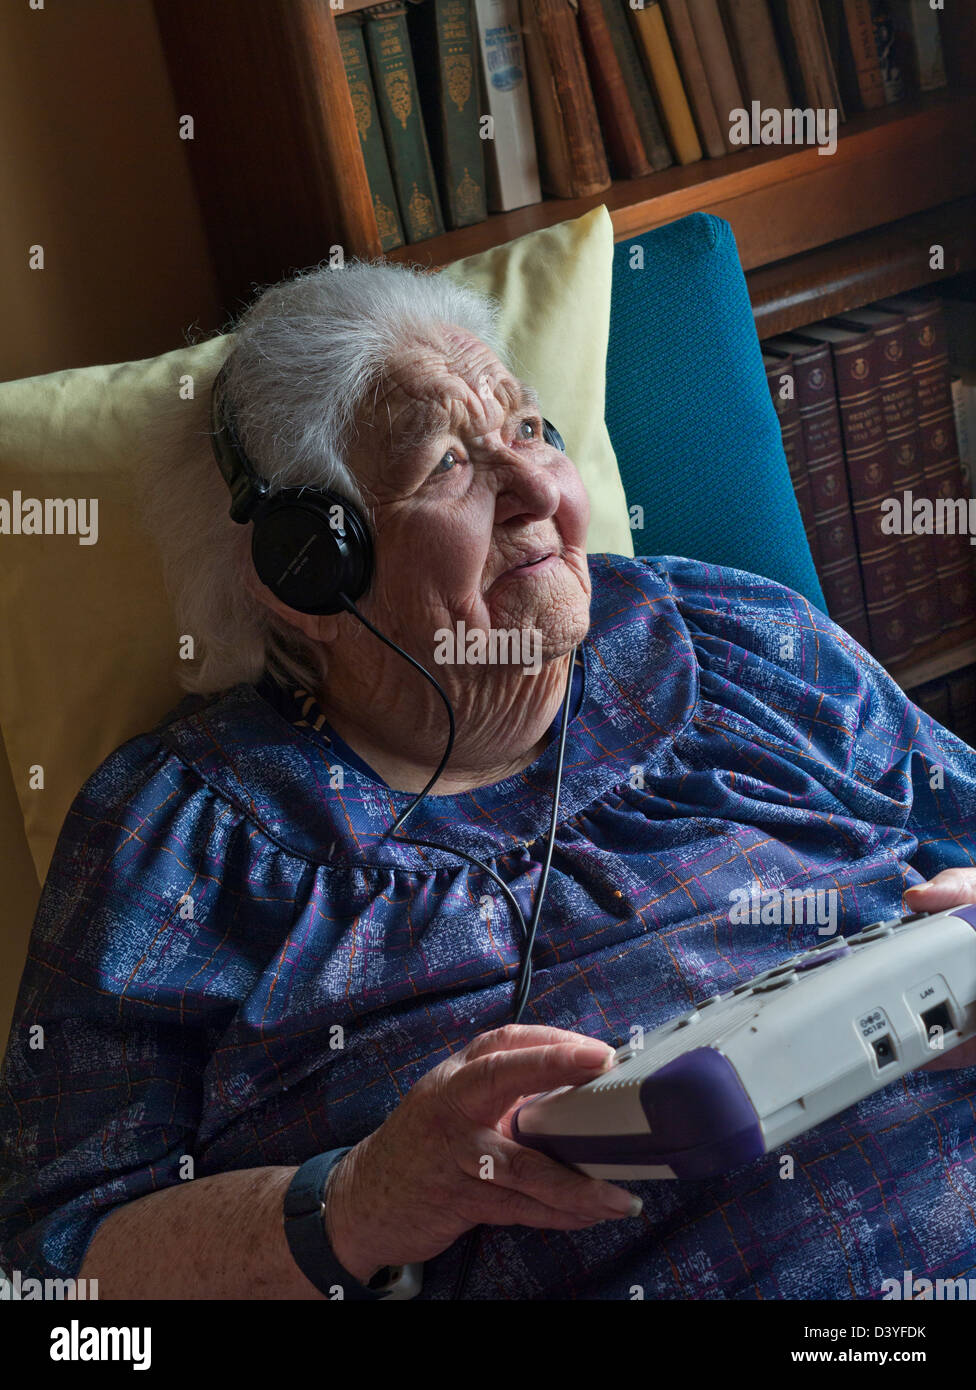 Elderly lady listening to an audio book, with a CD player designed